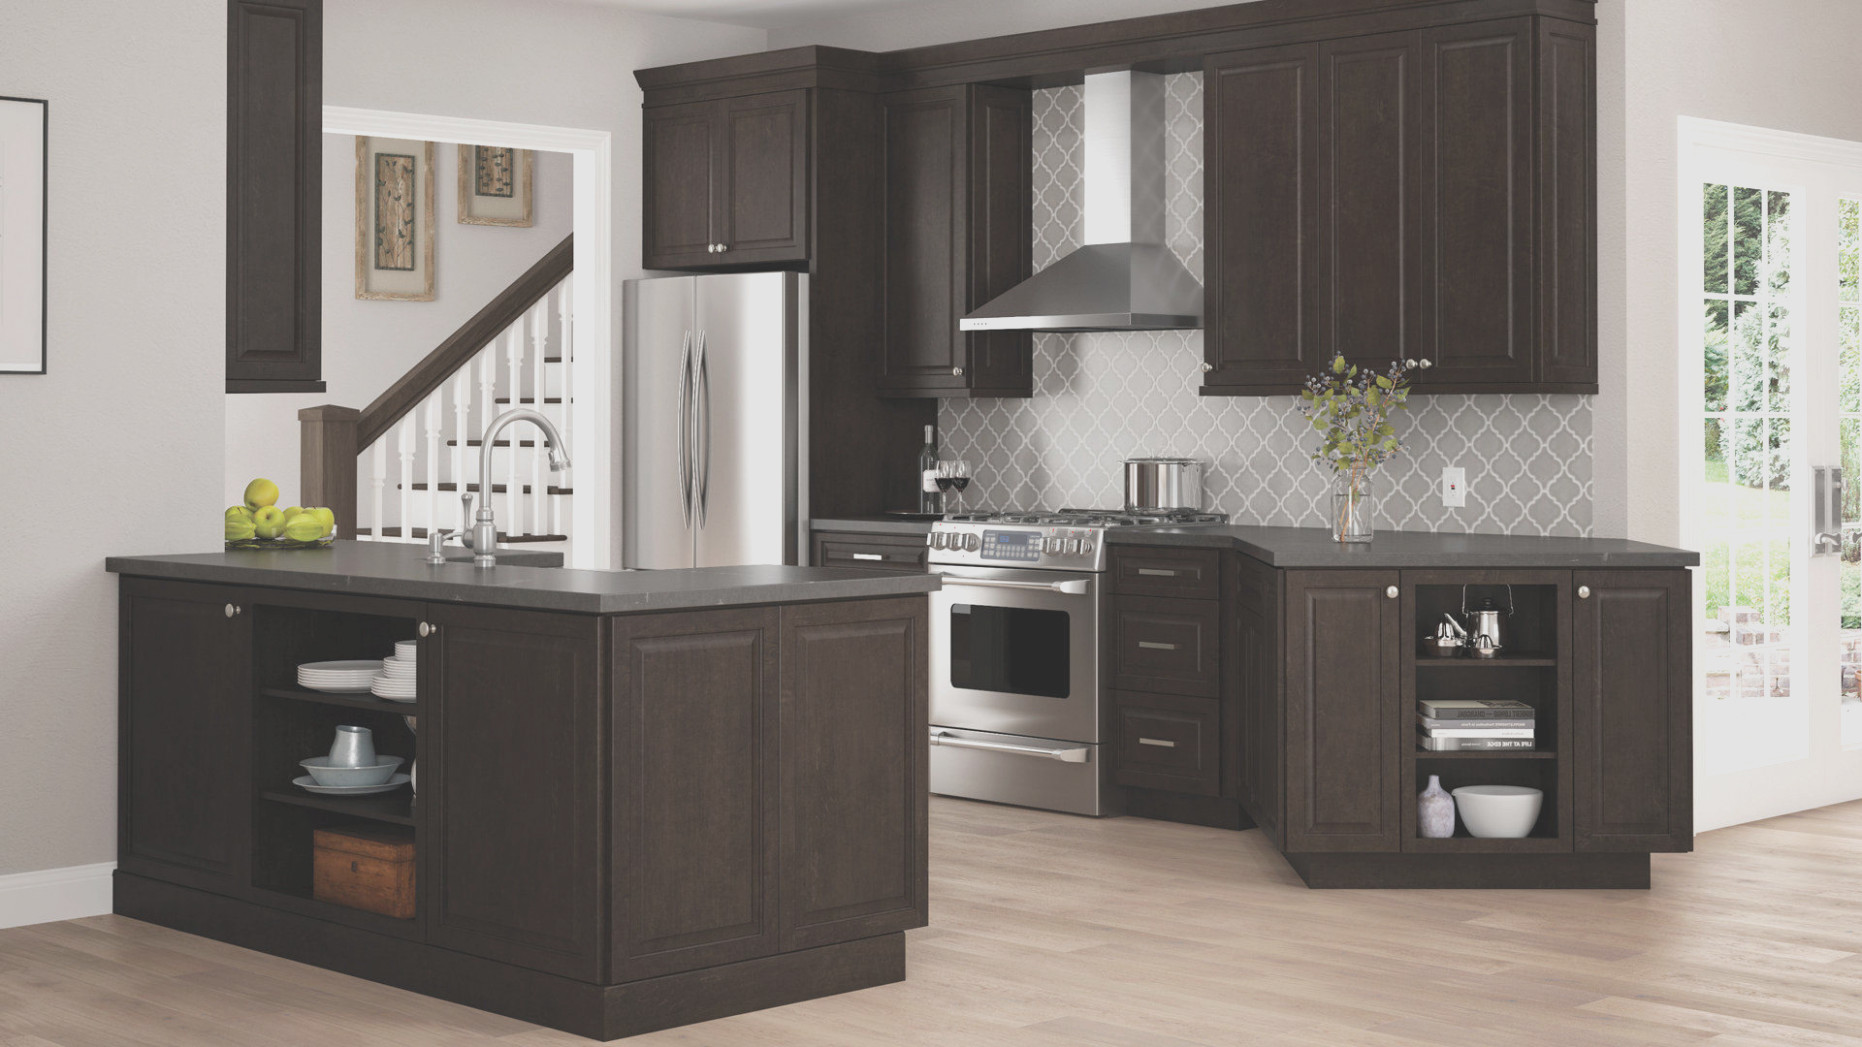 Legacy Cabinets Home Depot